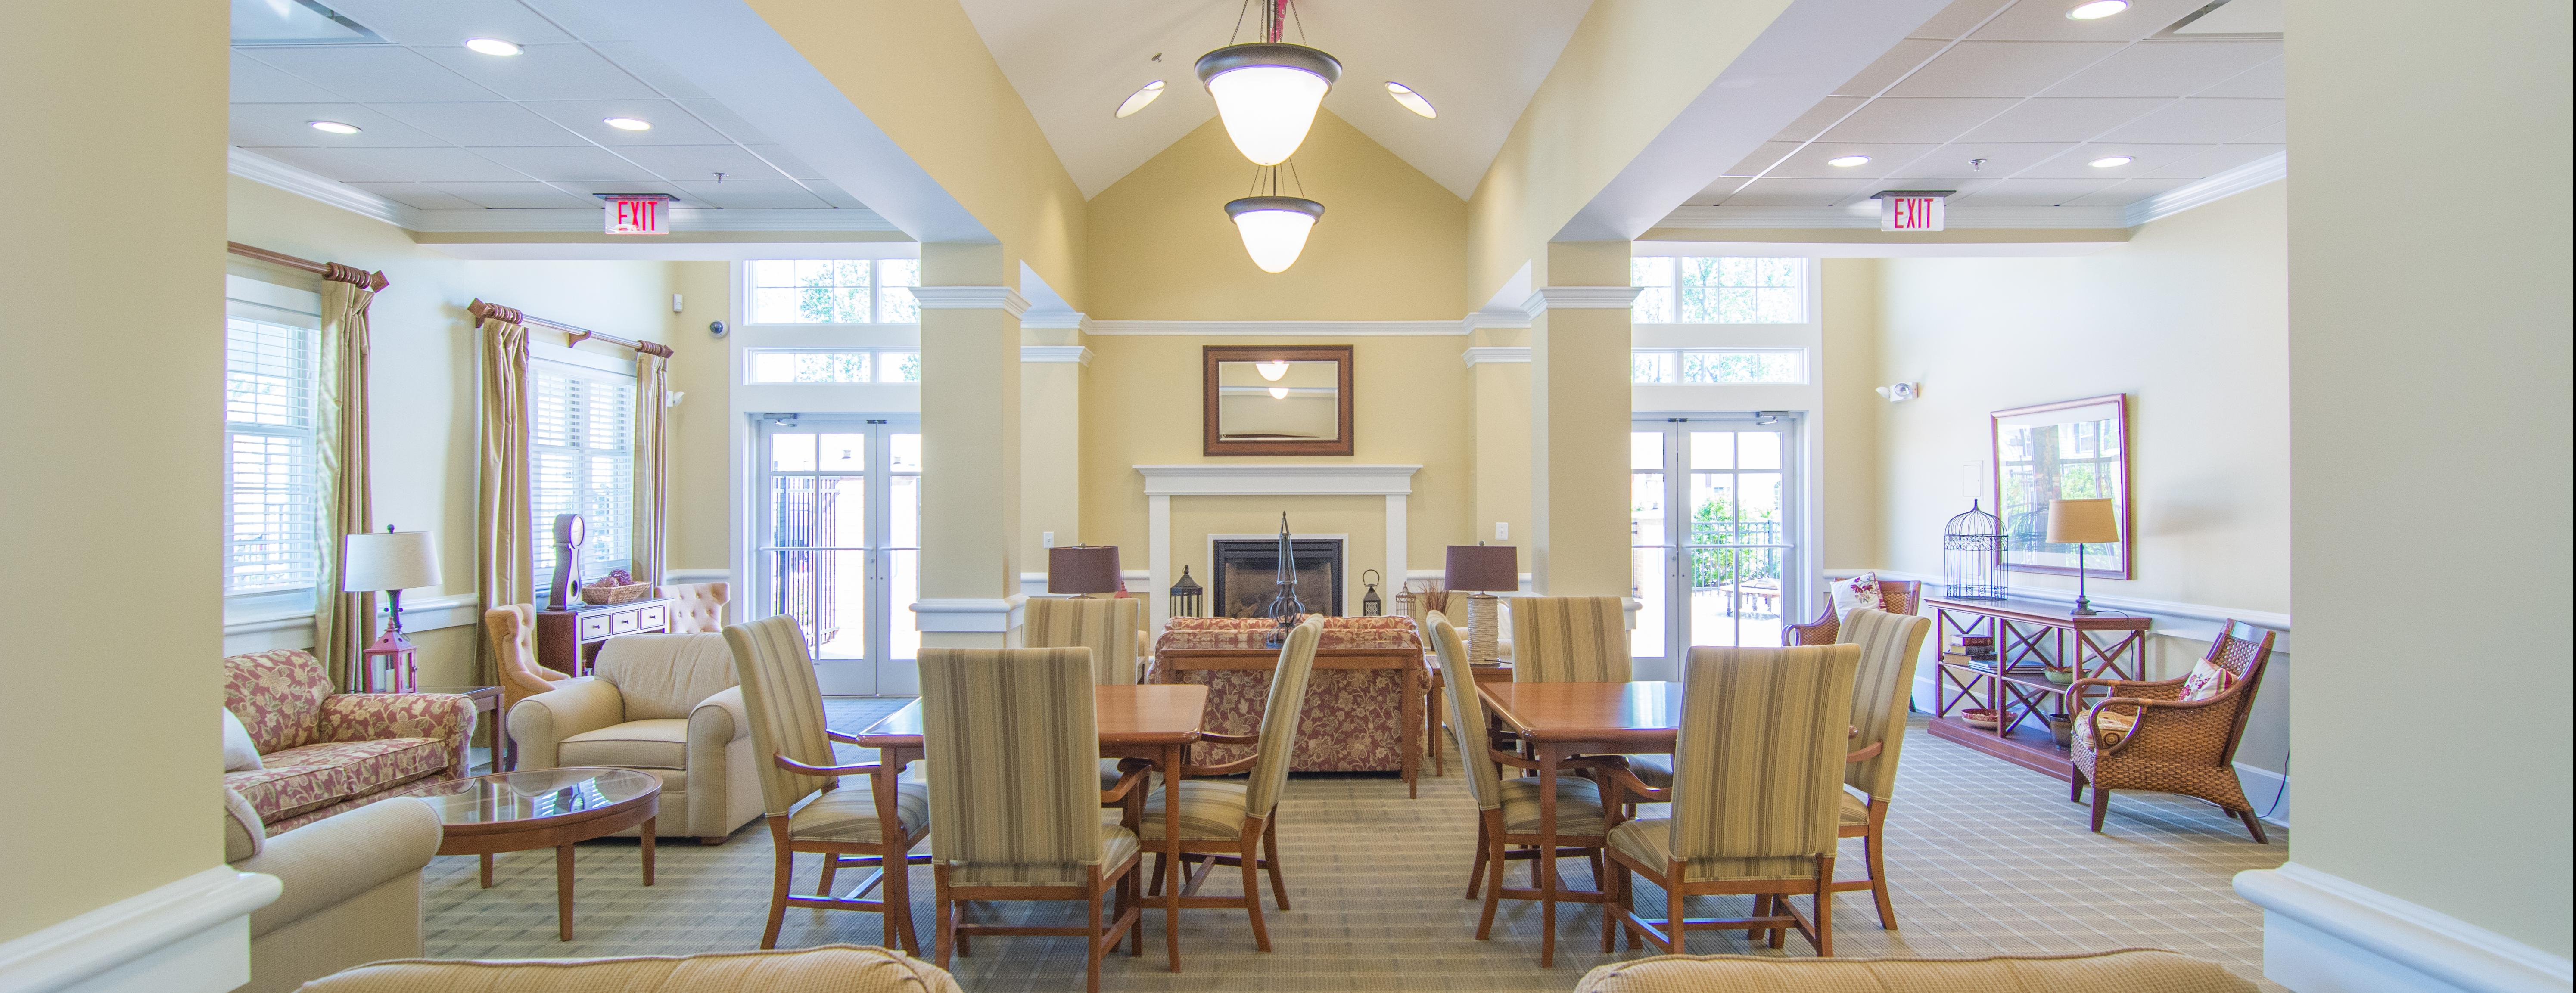 Legacy at Fallston Commons